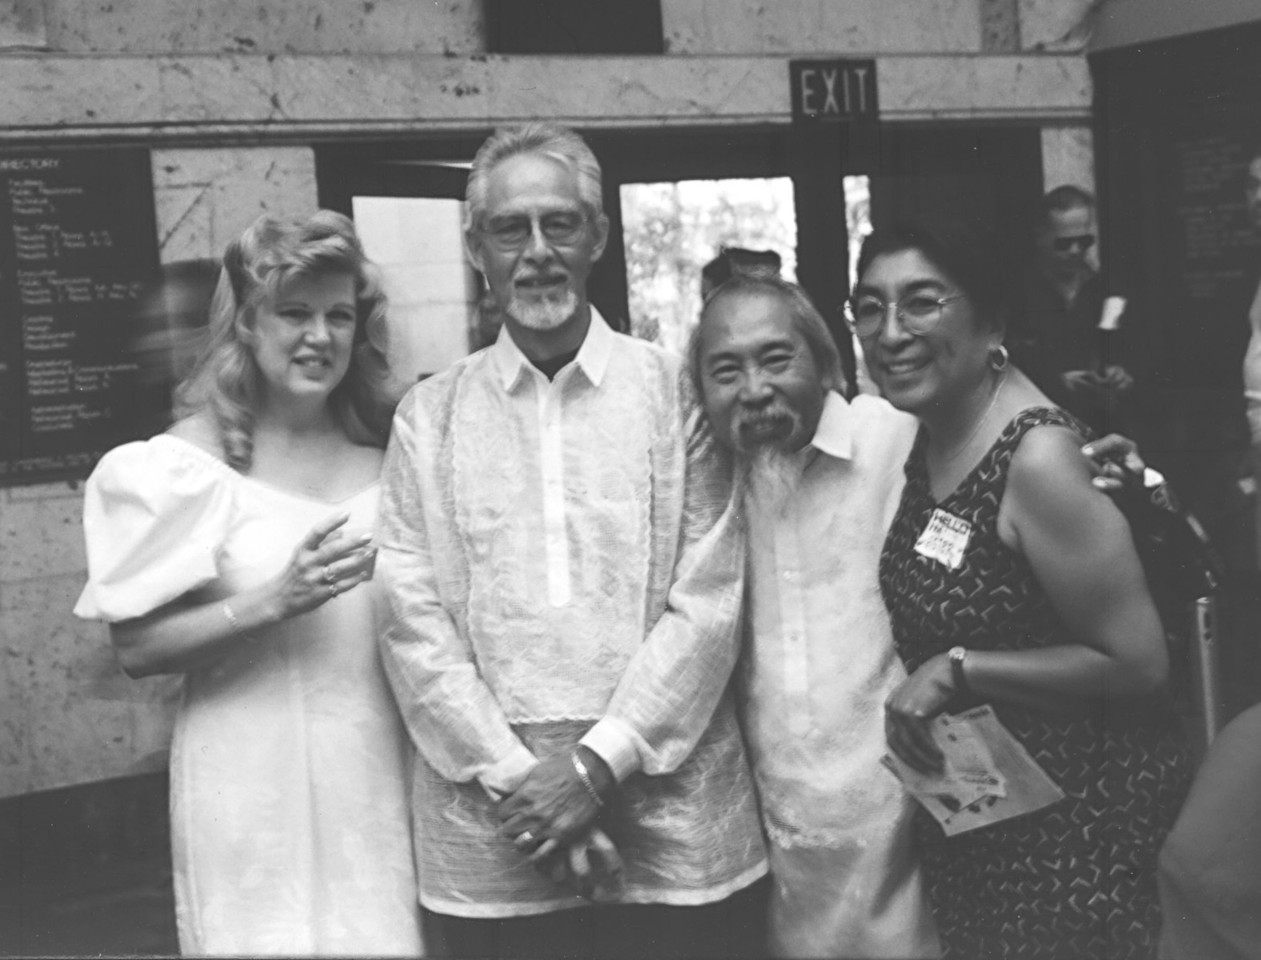 Three of the early co-founders of SIPA were (R-L) Ester Soriano, Royal Morales, and Al Mendoza. Here they are joined by Al's wife Candy on the far left for an event at the Los Angeles Theater Center (LATC).